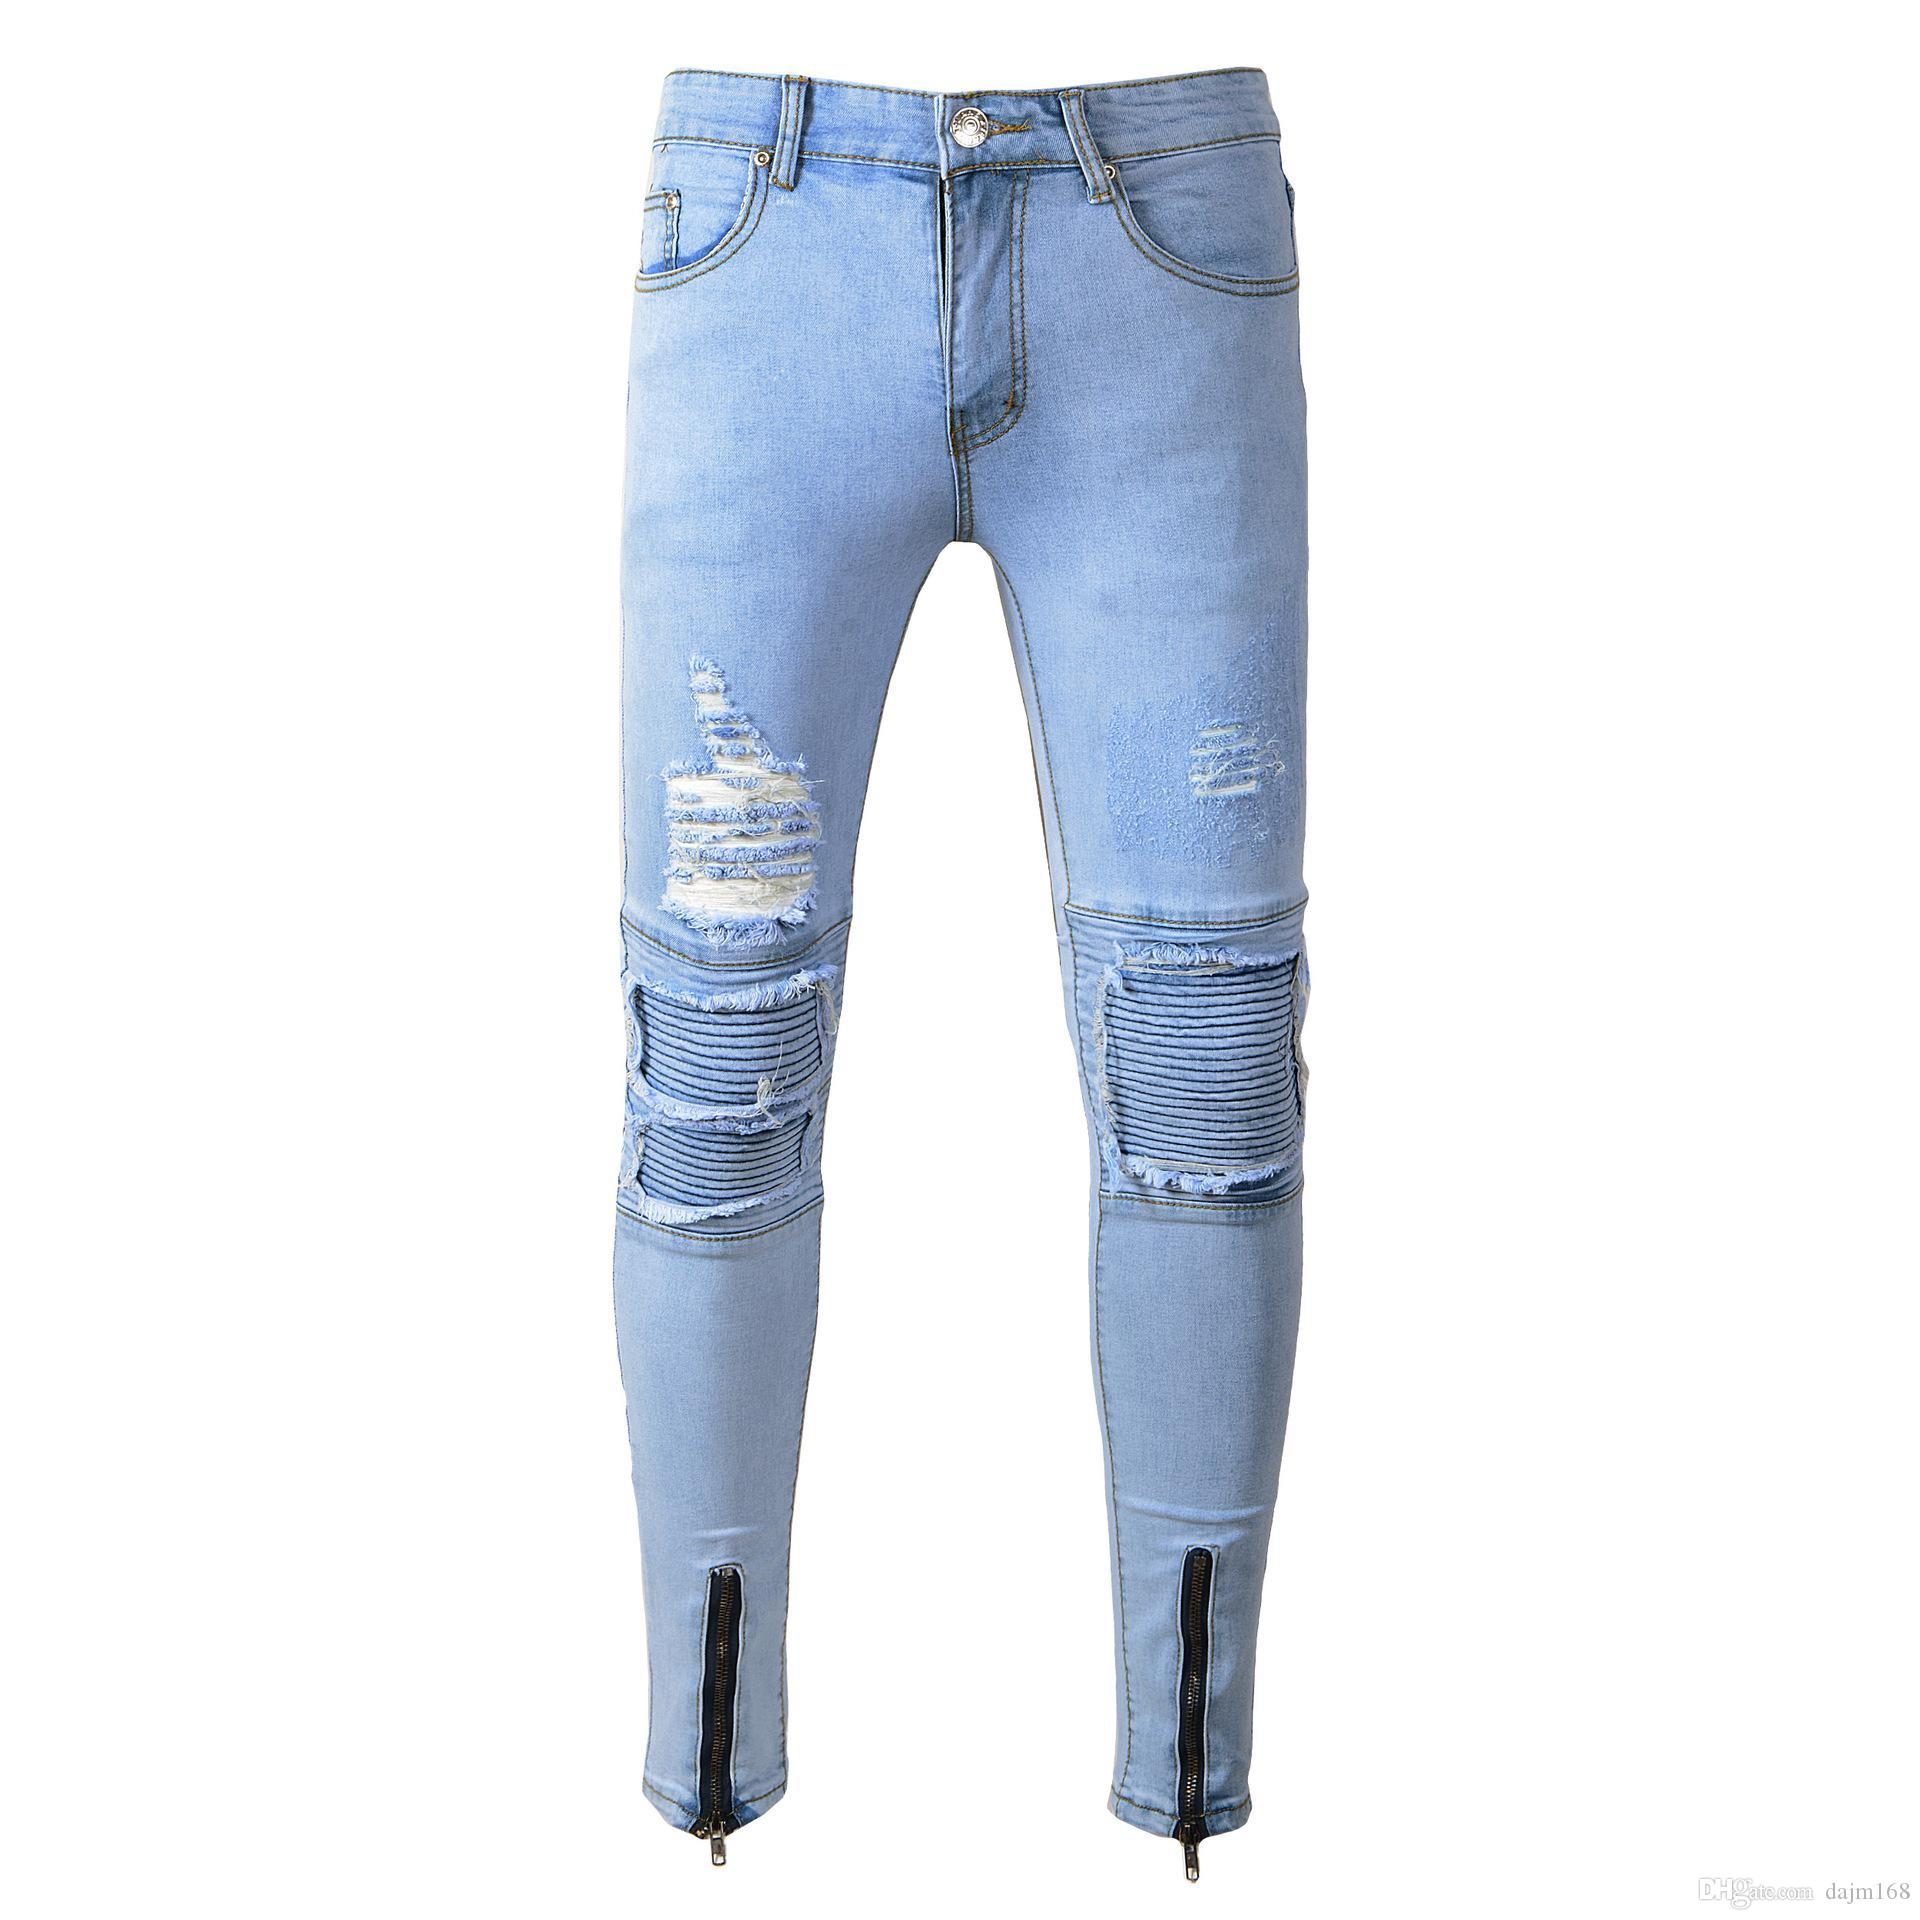 428a64d423a8 2019 Fashion Mens Straight Slim Fit Hole Biker Jeans Light Colored Washed  Pencil Pants Ripped Destroyed Denim Jeans Hip Hop Streetwear Blue From  Dajm168, ...